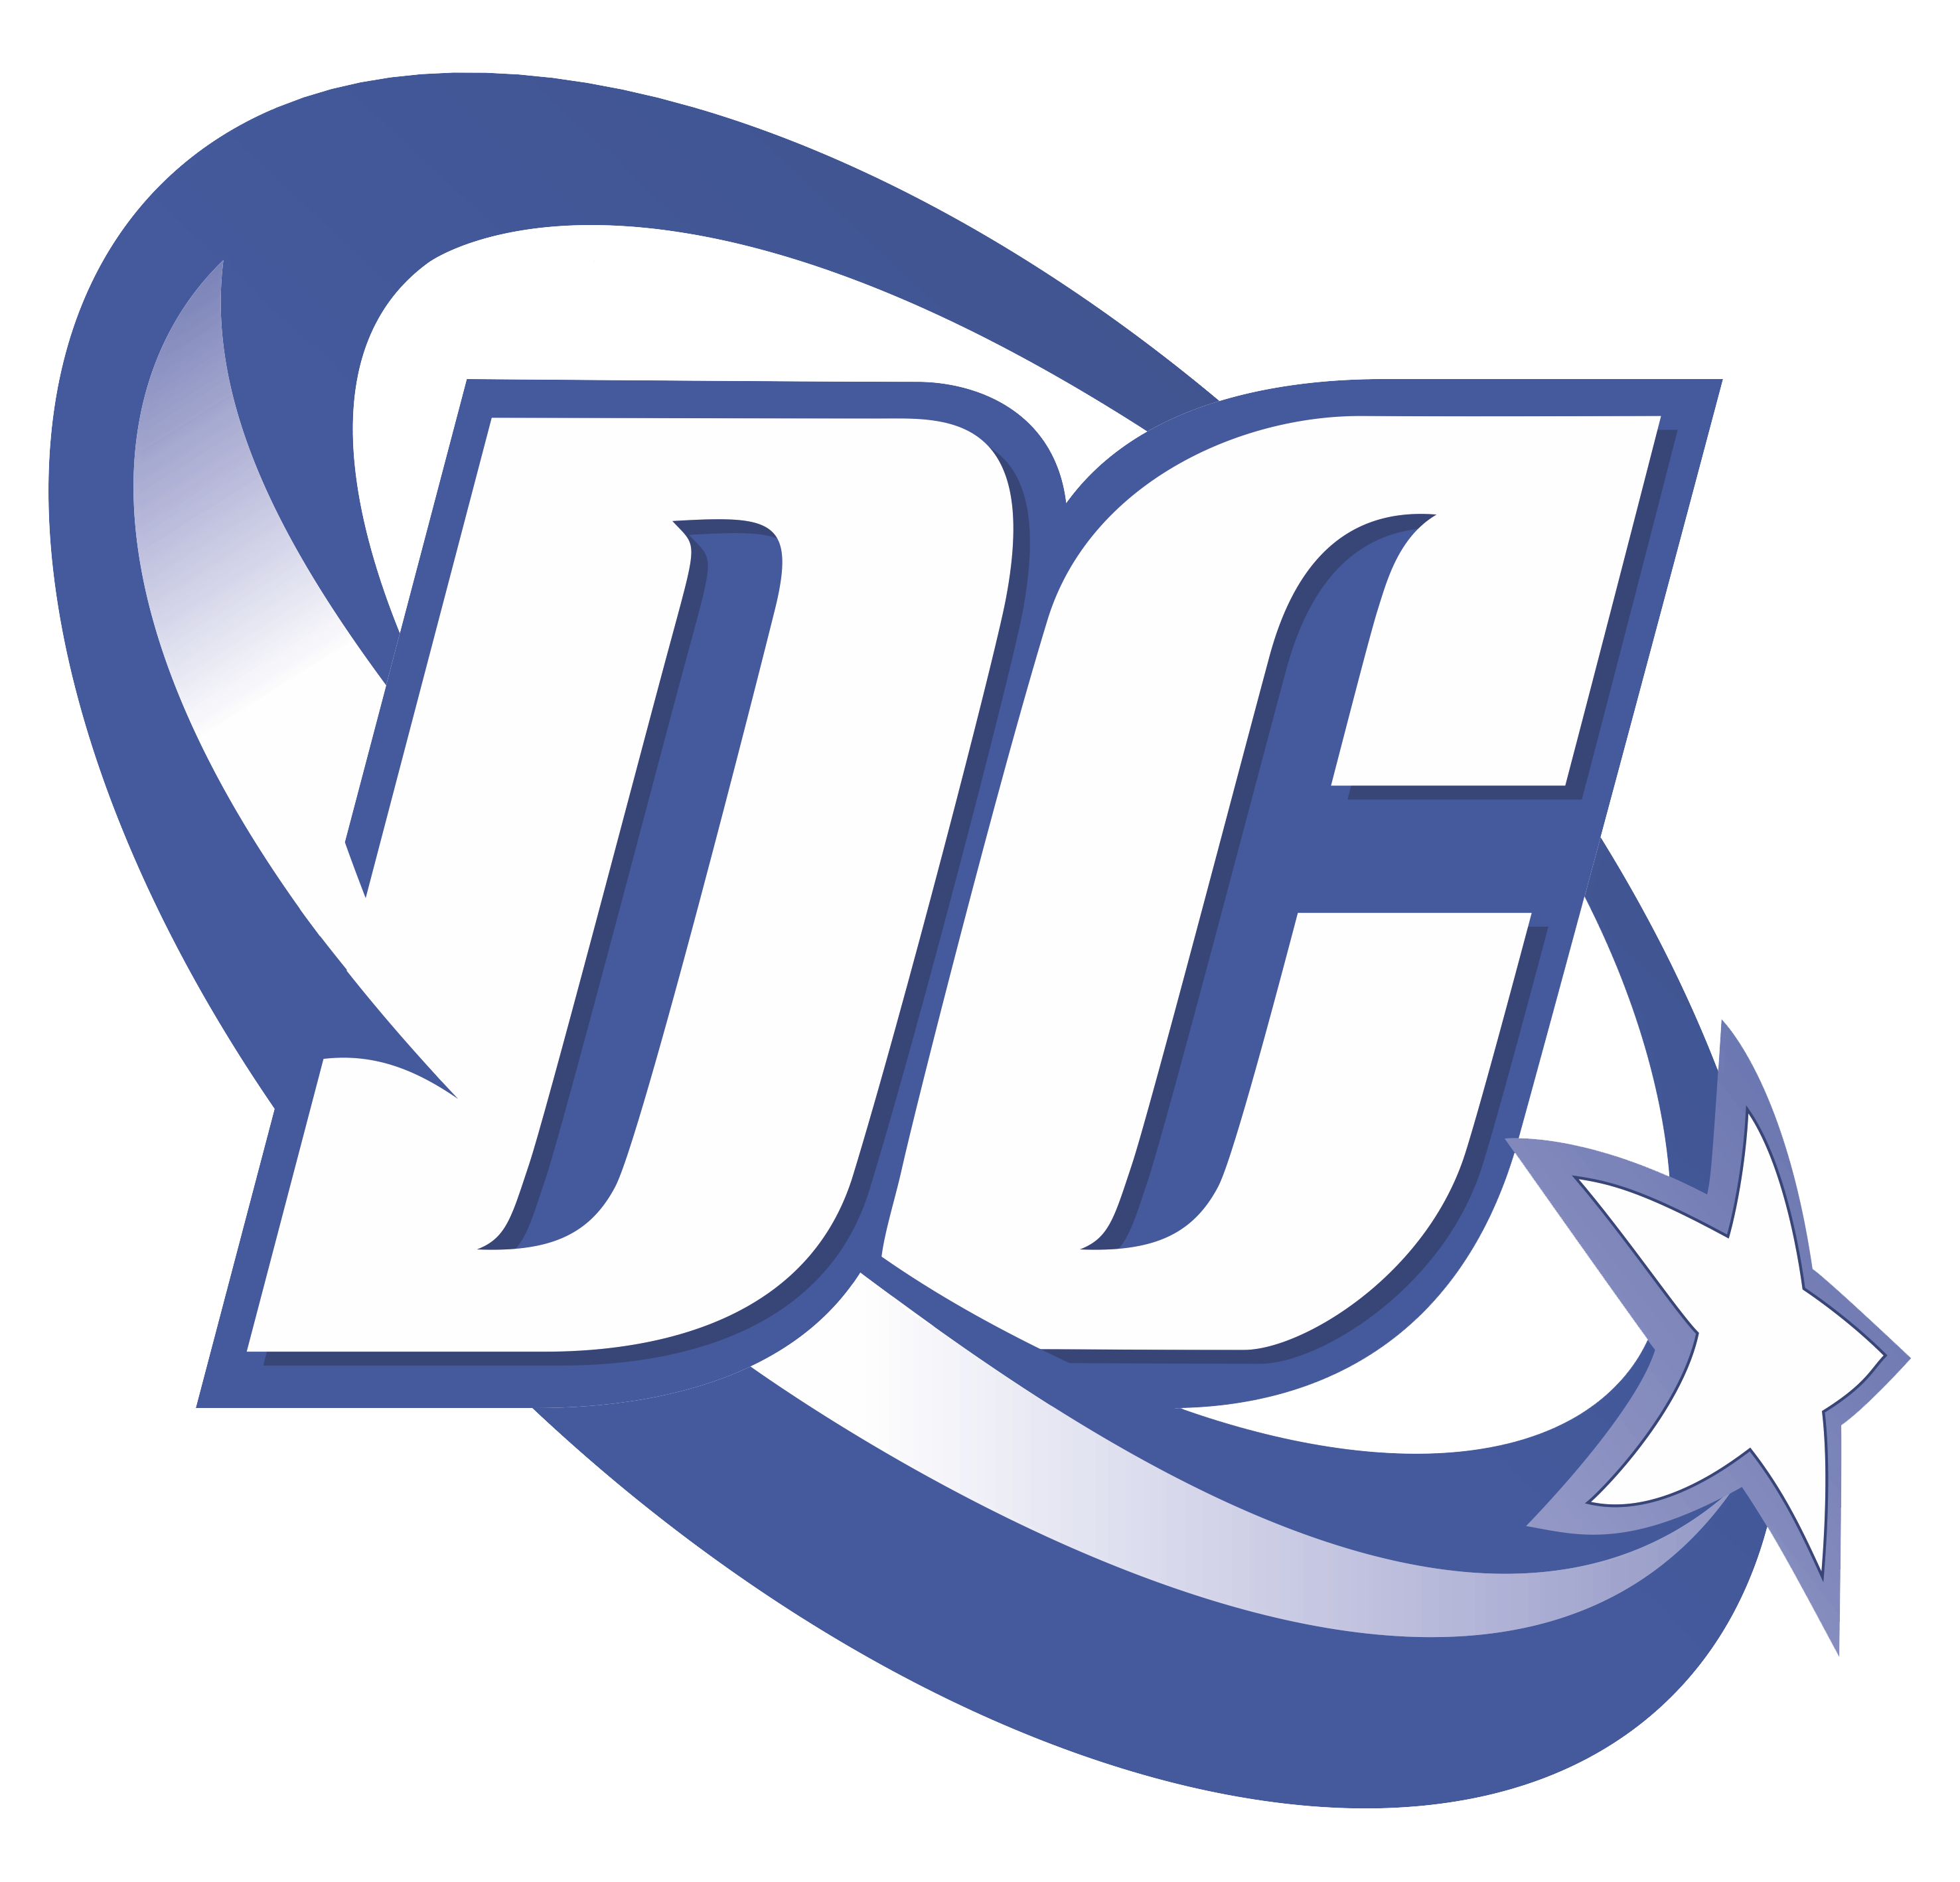 DC Logo - New DC logo - QBN | Movies | DC Comics, Comics, Comic books